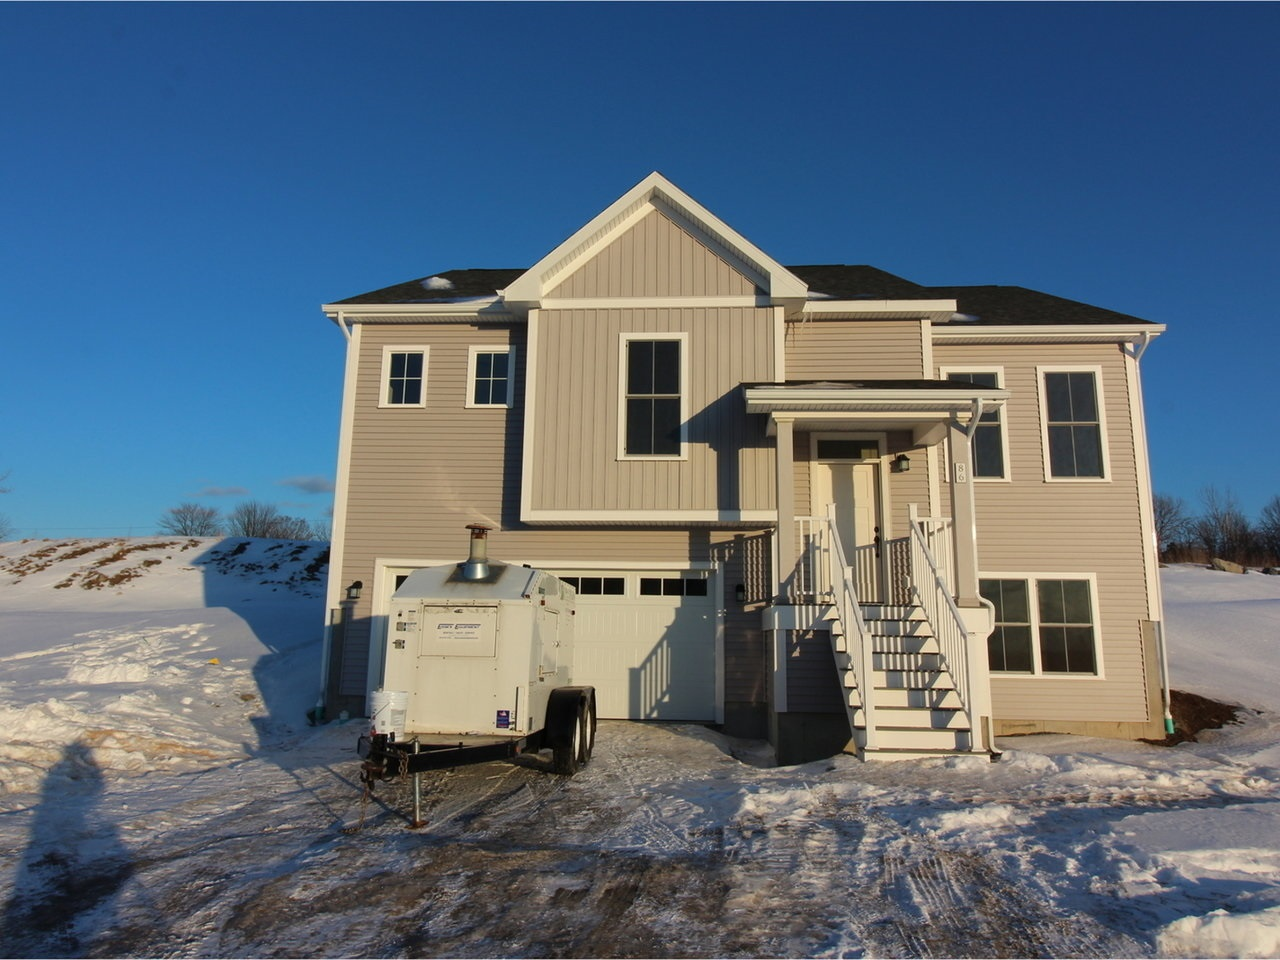 136 Two Brothers Drive, South Burlington, Vermont 05403, 2 Bedrooms Bedrooms, ,2 BathroomsBathrooms,Single Family,For Sale,136 Two Brothers Drive,2,4848201